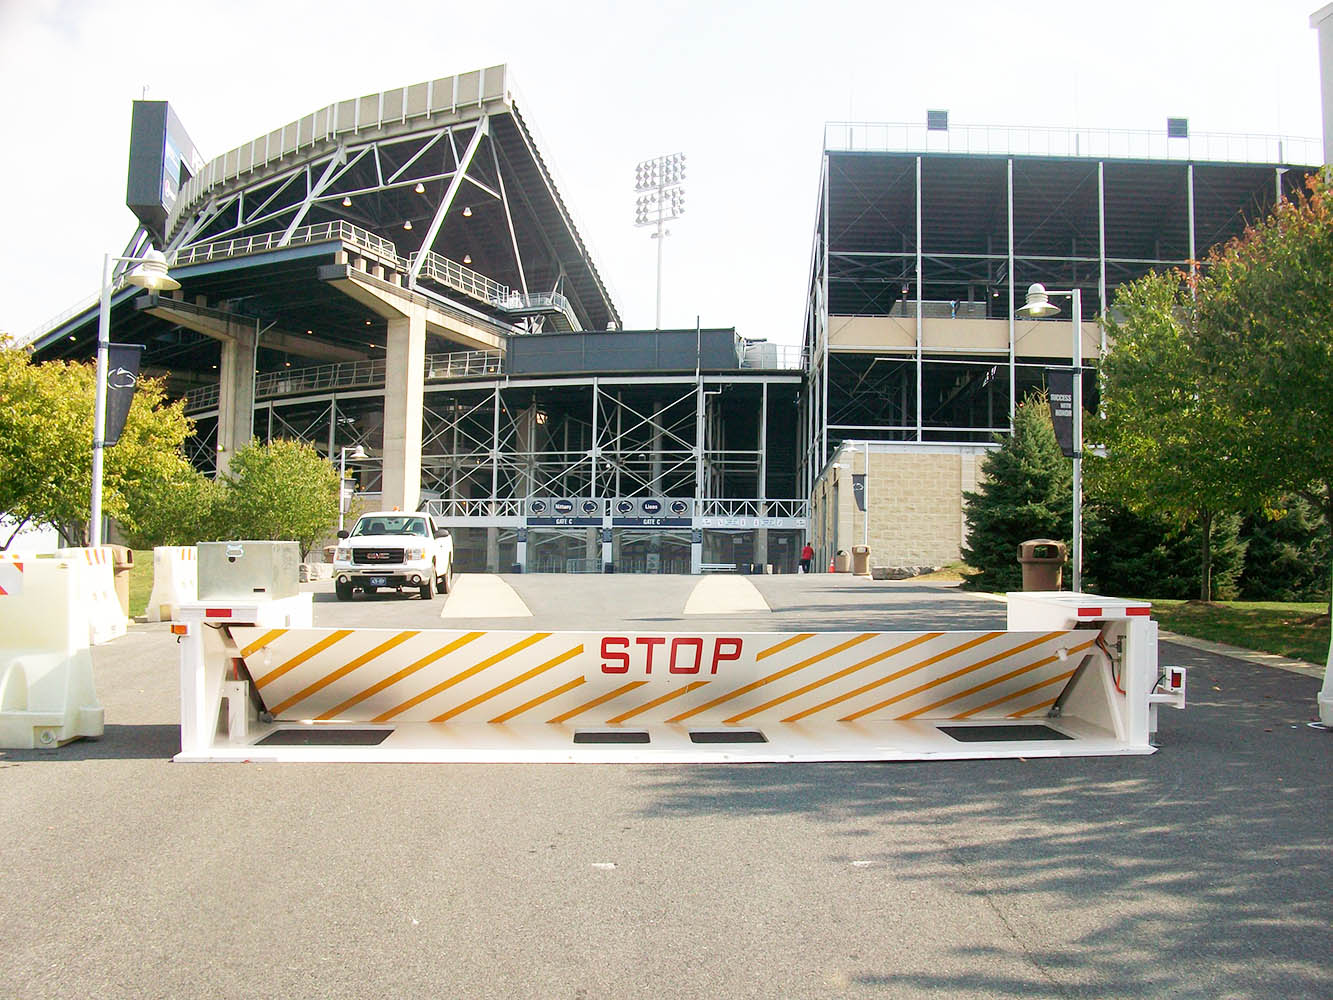 PORTABLE BARRIERS